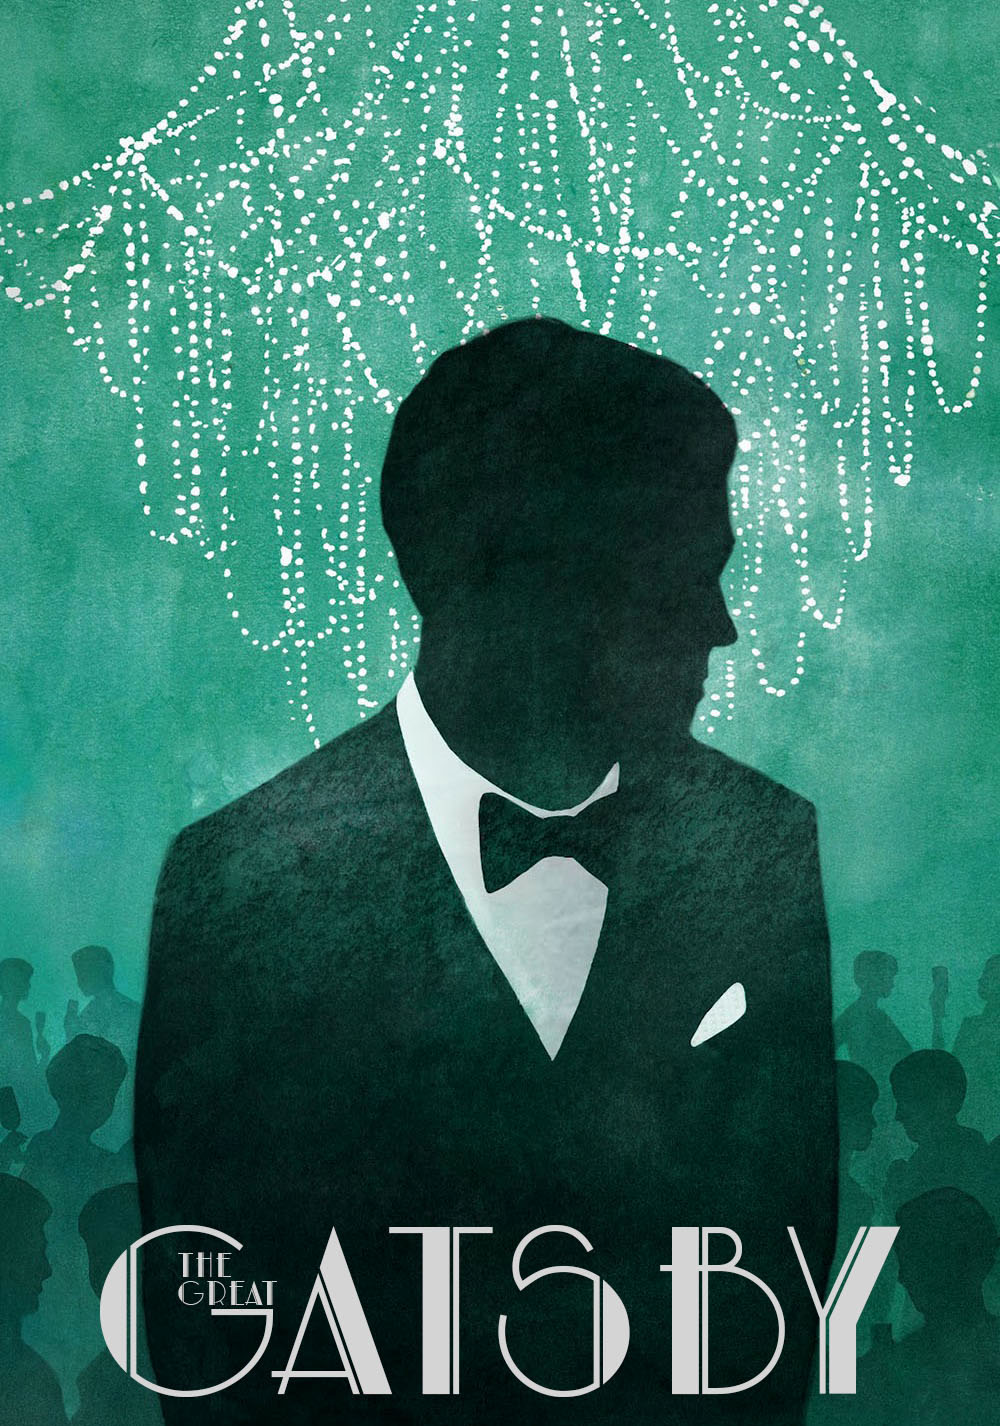 a focus on the love shared between gatsby and daisy in f scott fitzgeralds novel the great gatsby